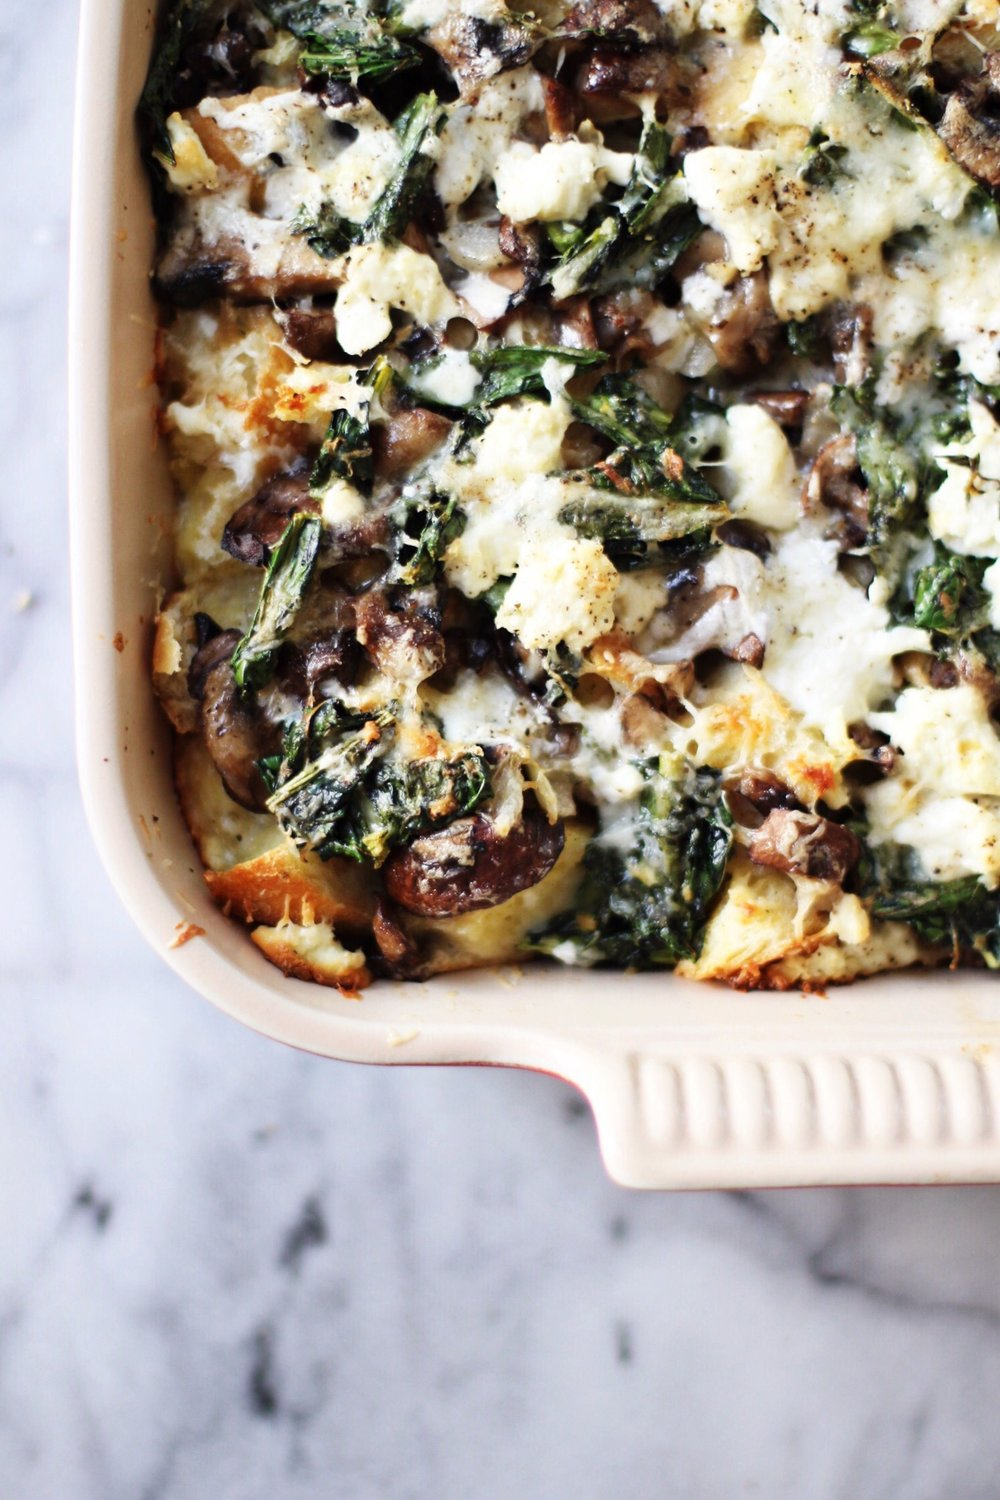 Savory bread pudding with mushrooms, goat cheese, and thyme - The Pastiche